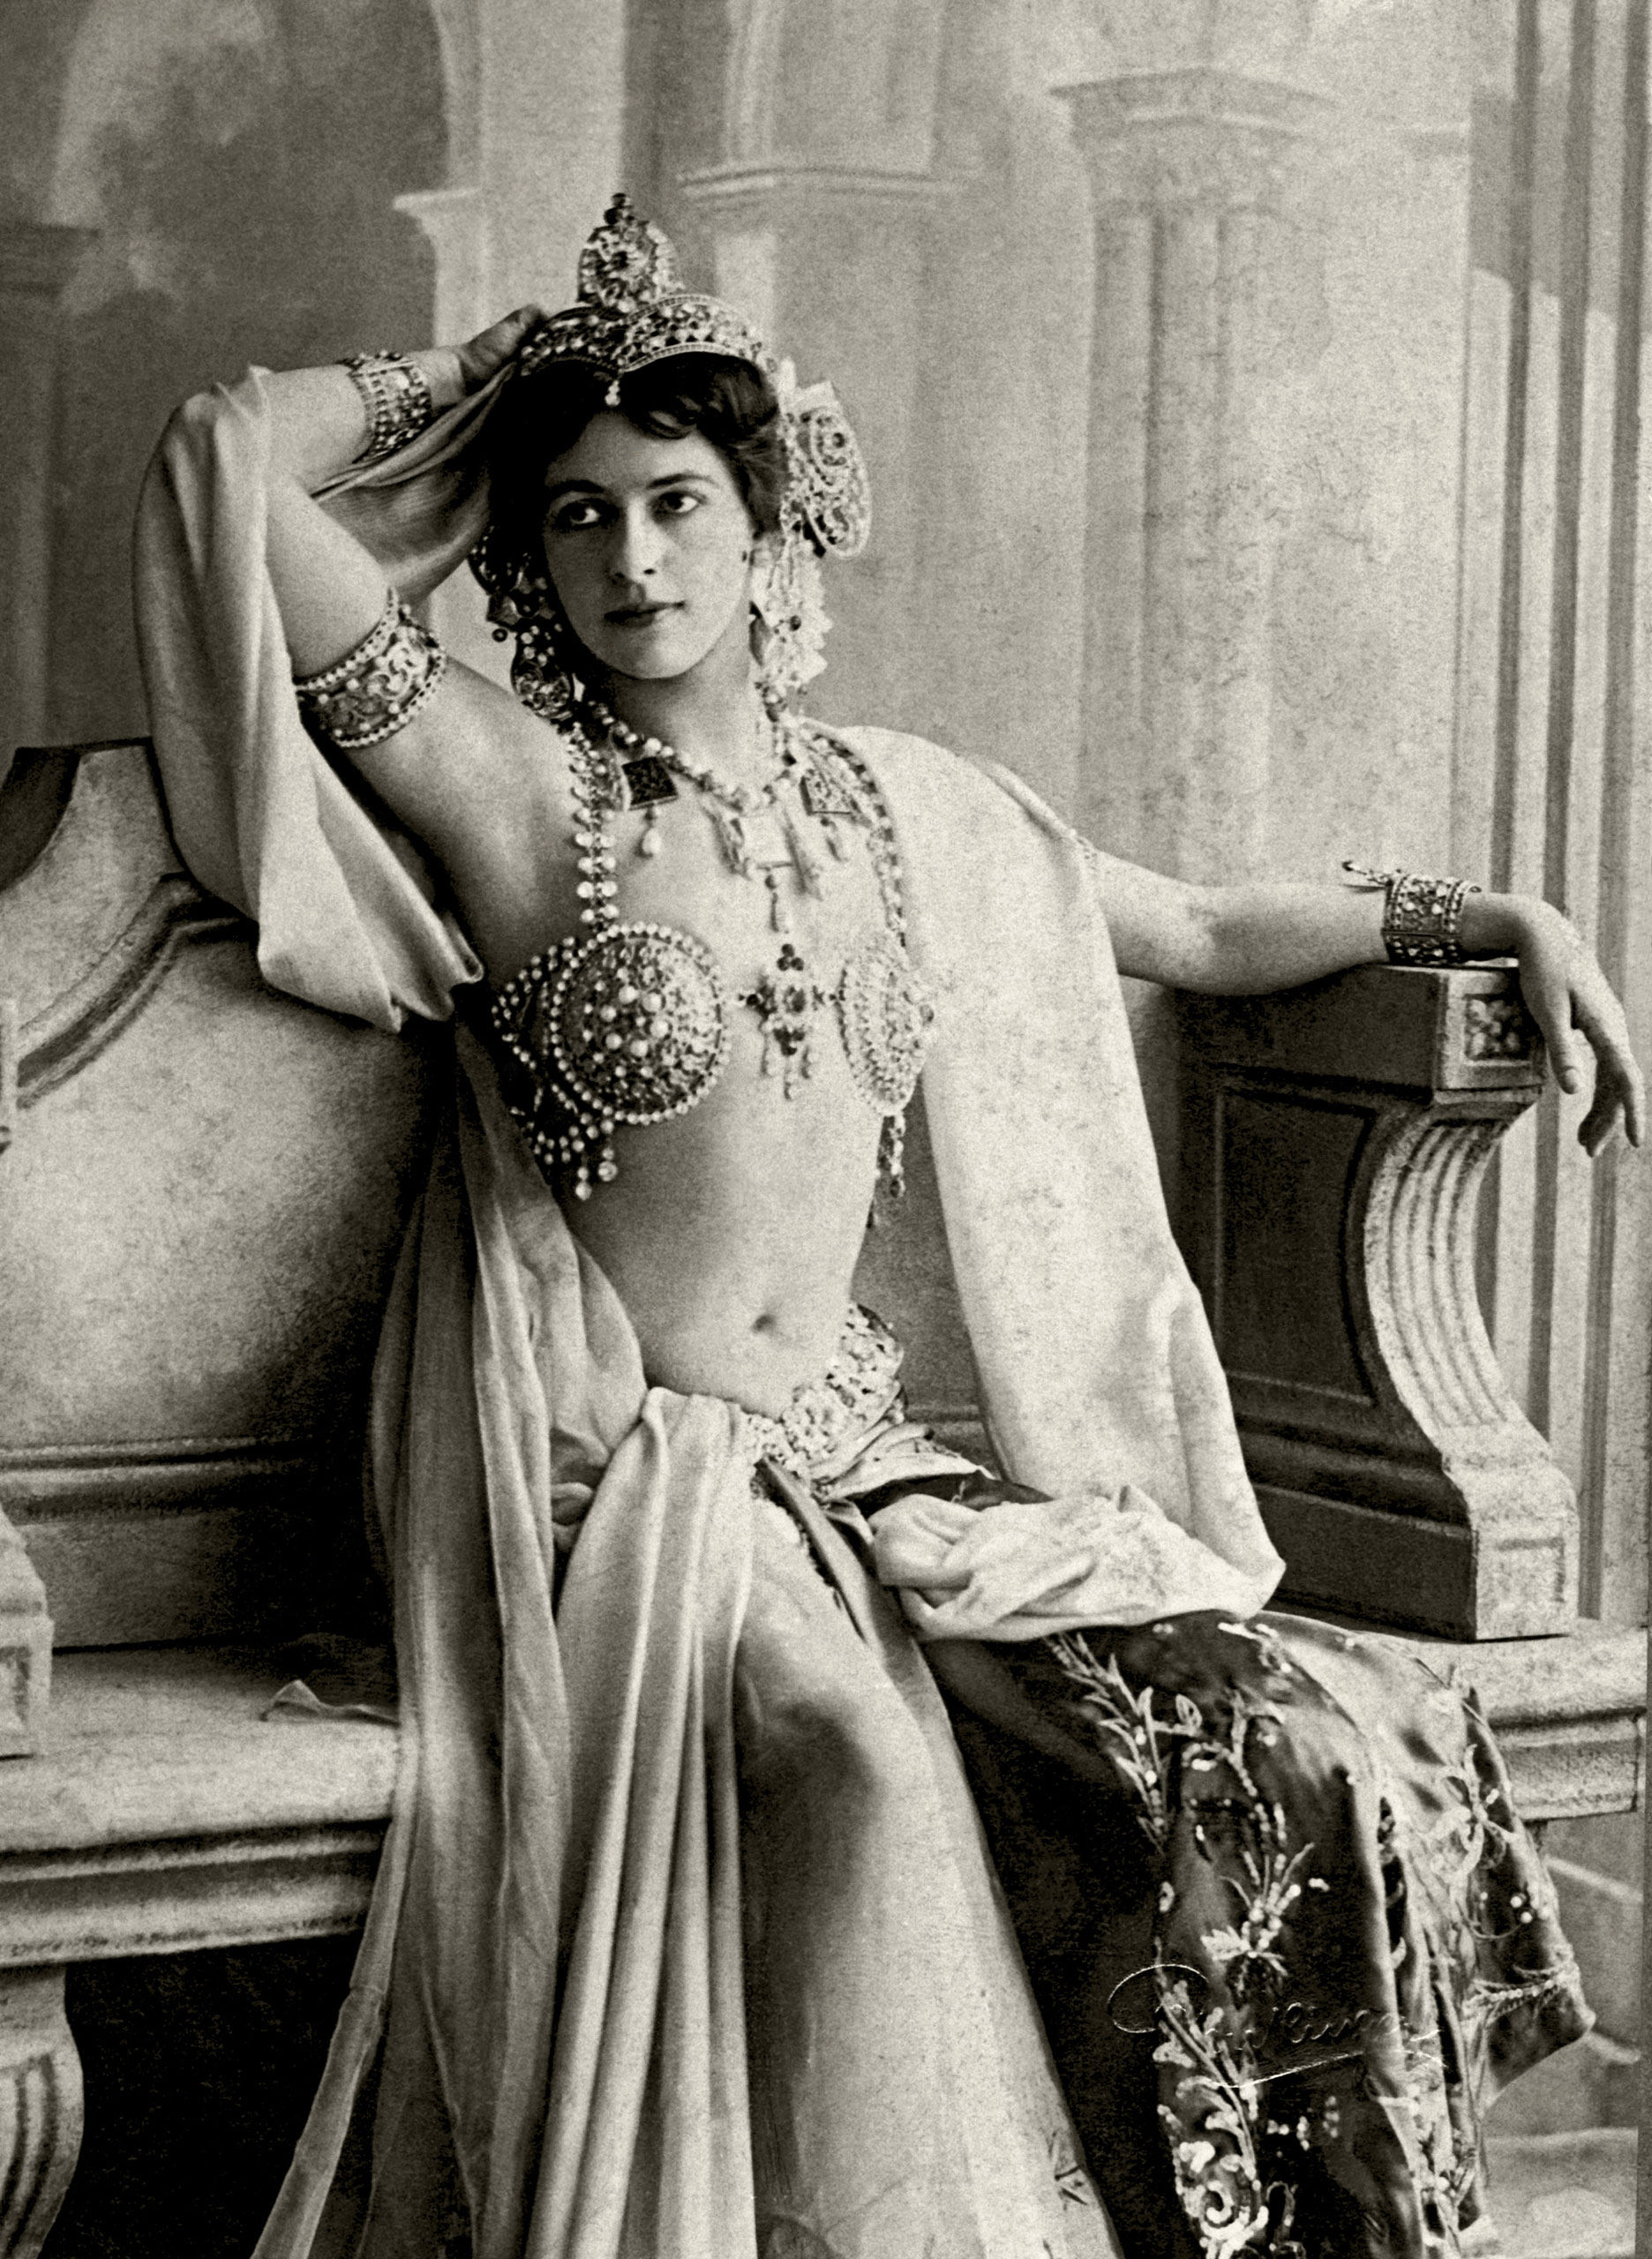 Mata Hari's Bejeweled Bra                                                               The famed exotic dancer and convicted spy was notorious for stripping down but never removing her jeweled metallic bra. It was said that she was self-conscious about her small breast size.